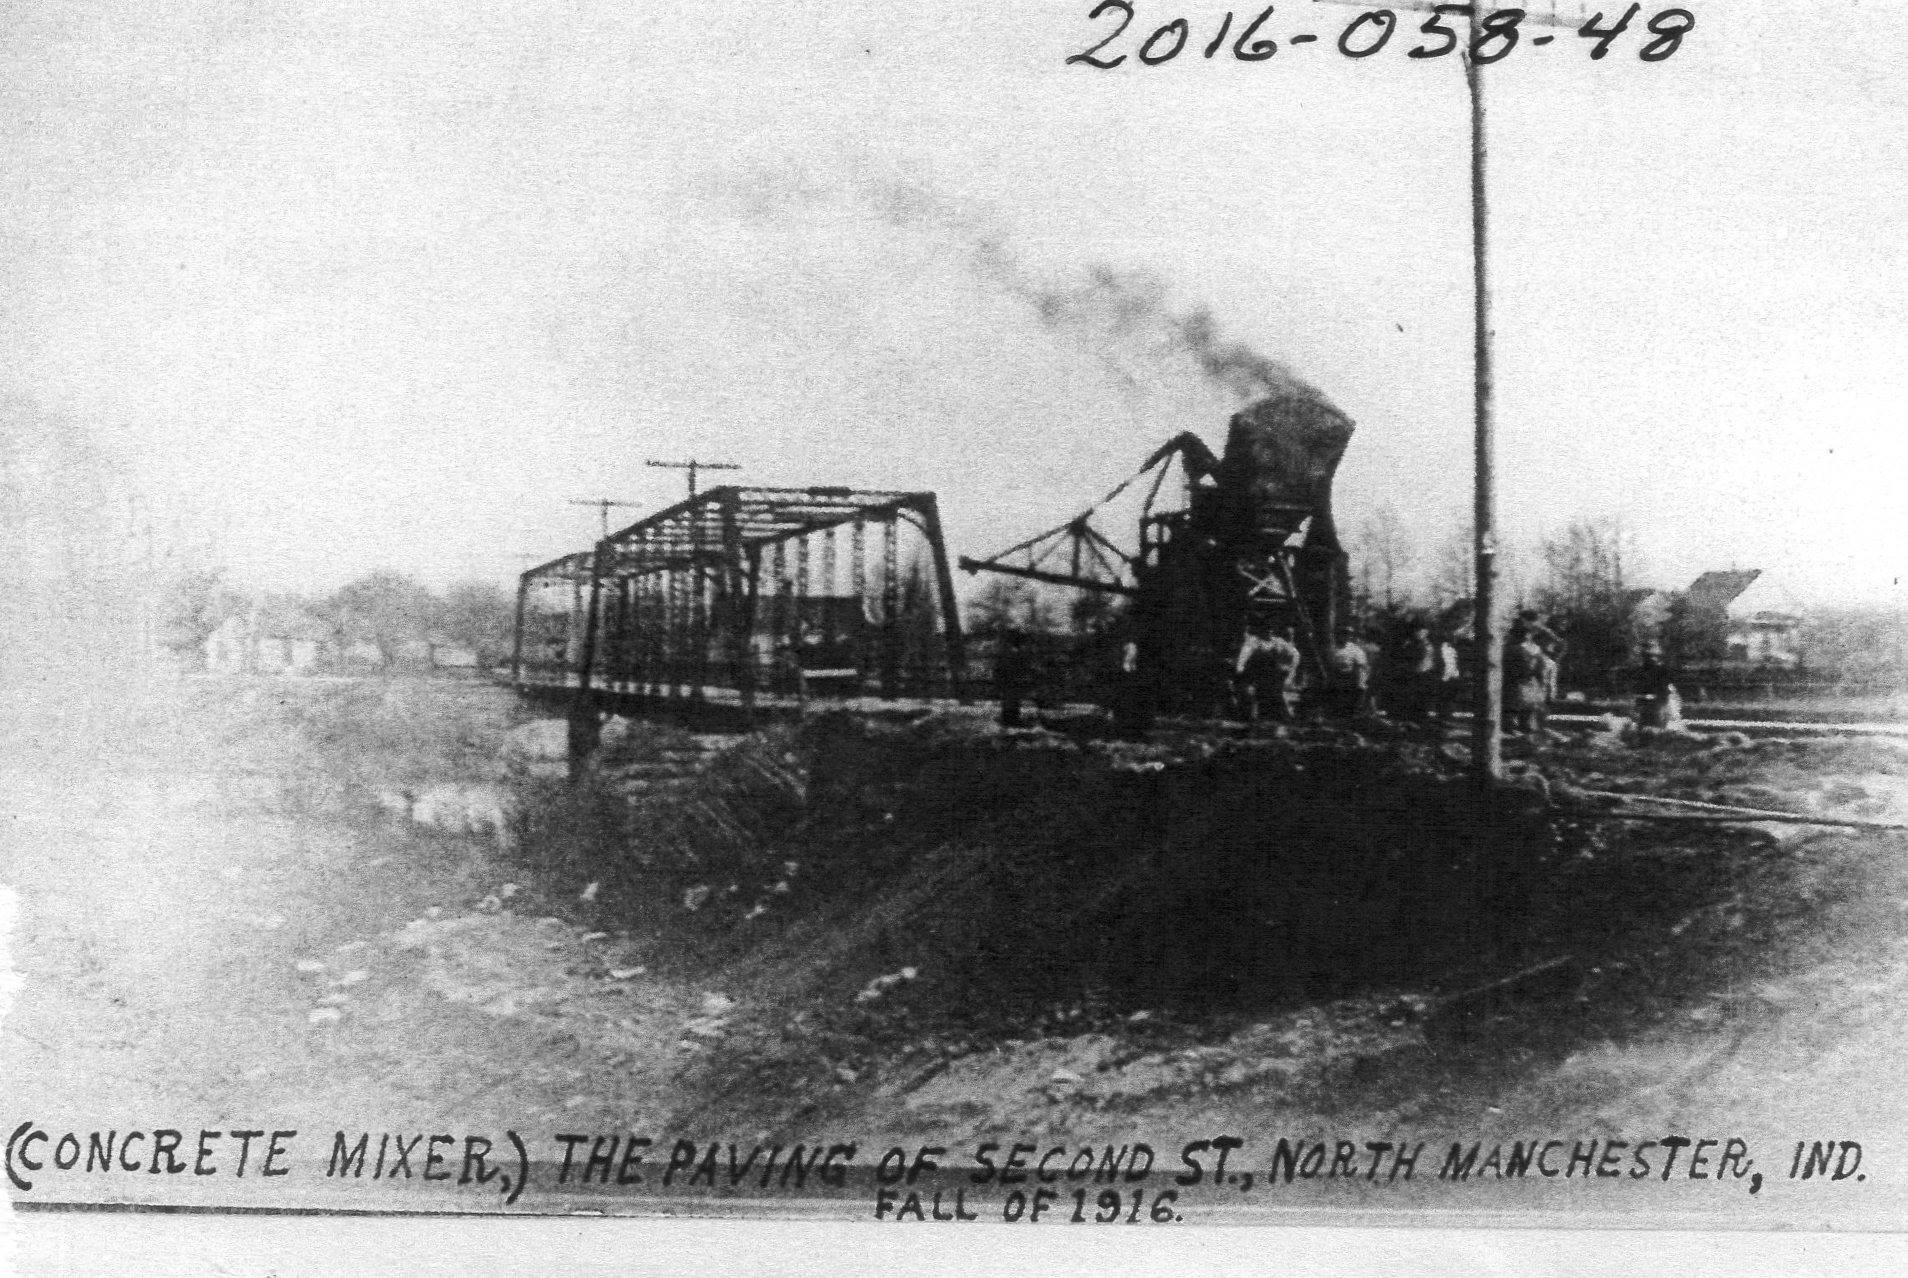 Second Street Bridge Fall 1916-concrete mixer